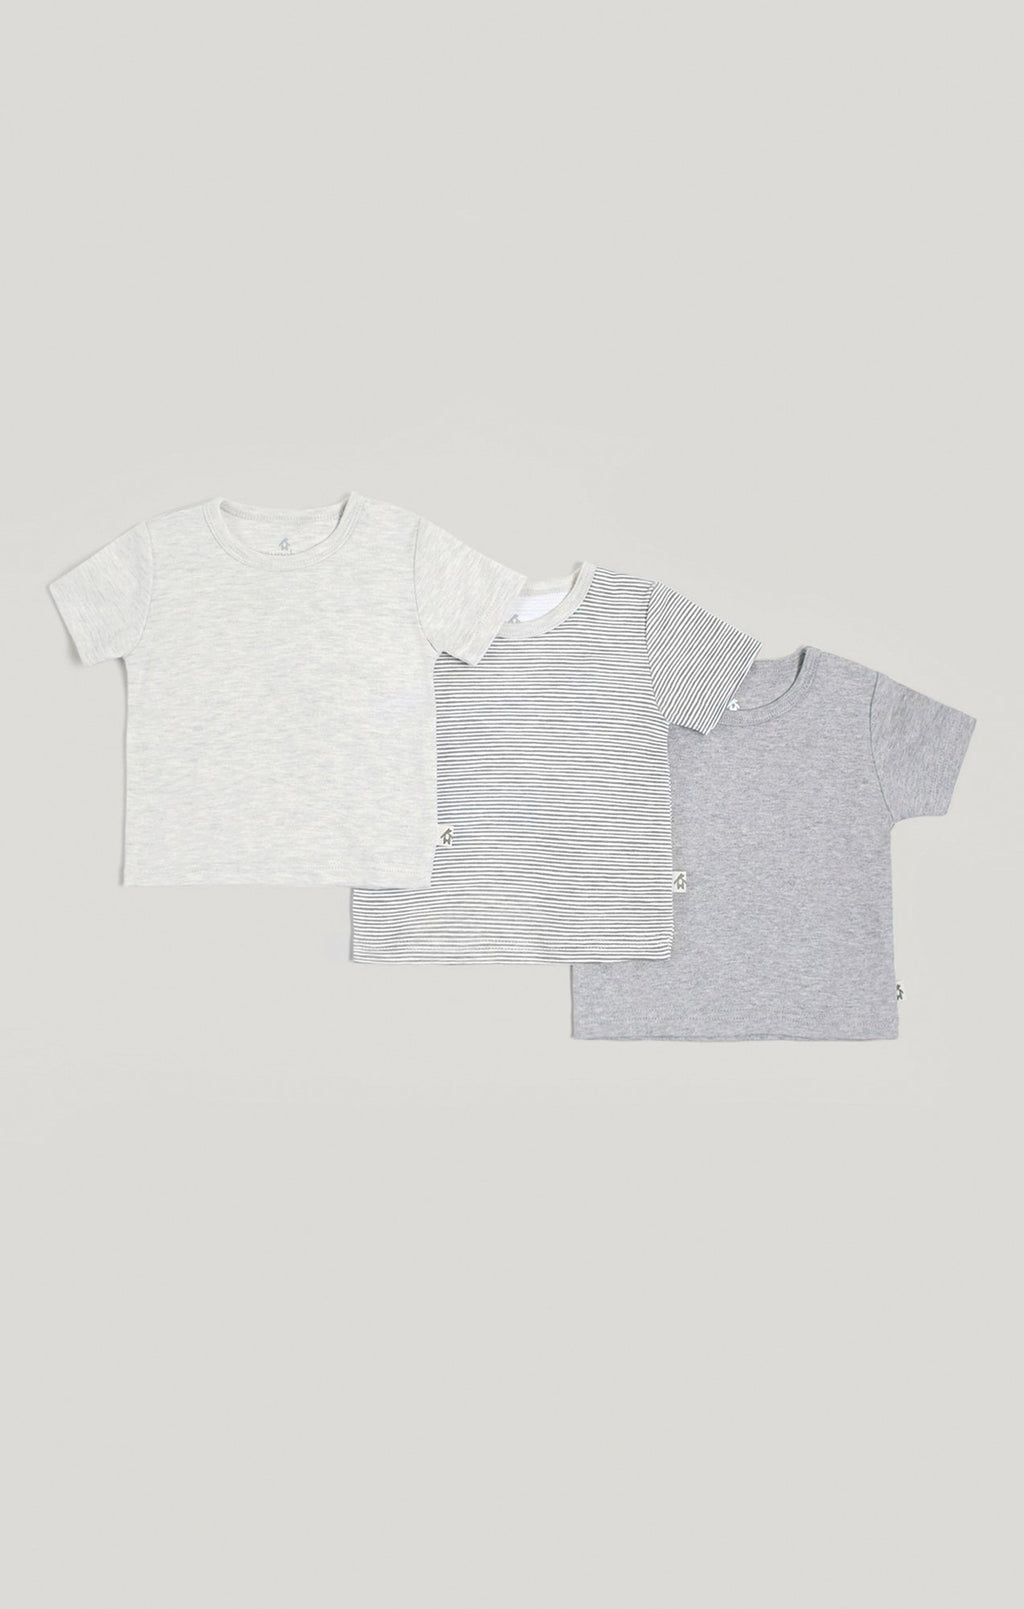 Baby Clothes - 3 Pk Neutral Short Sleeve T-Shirts